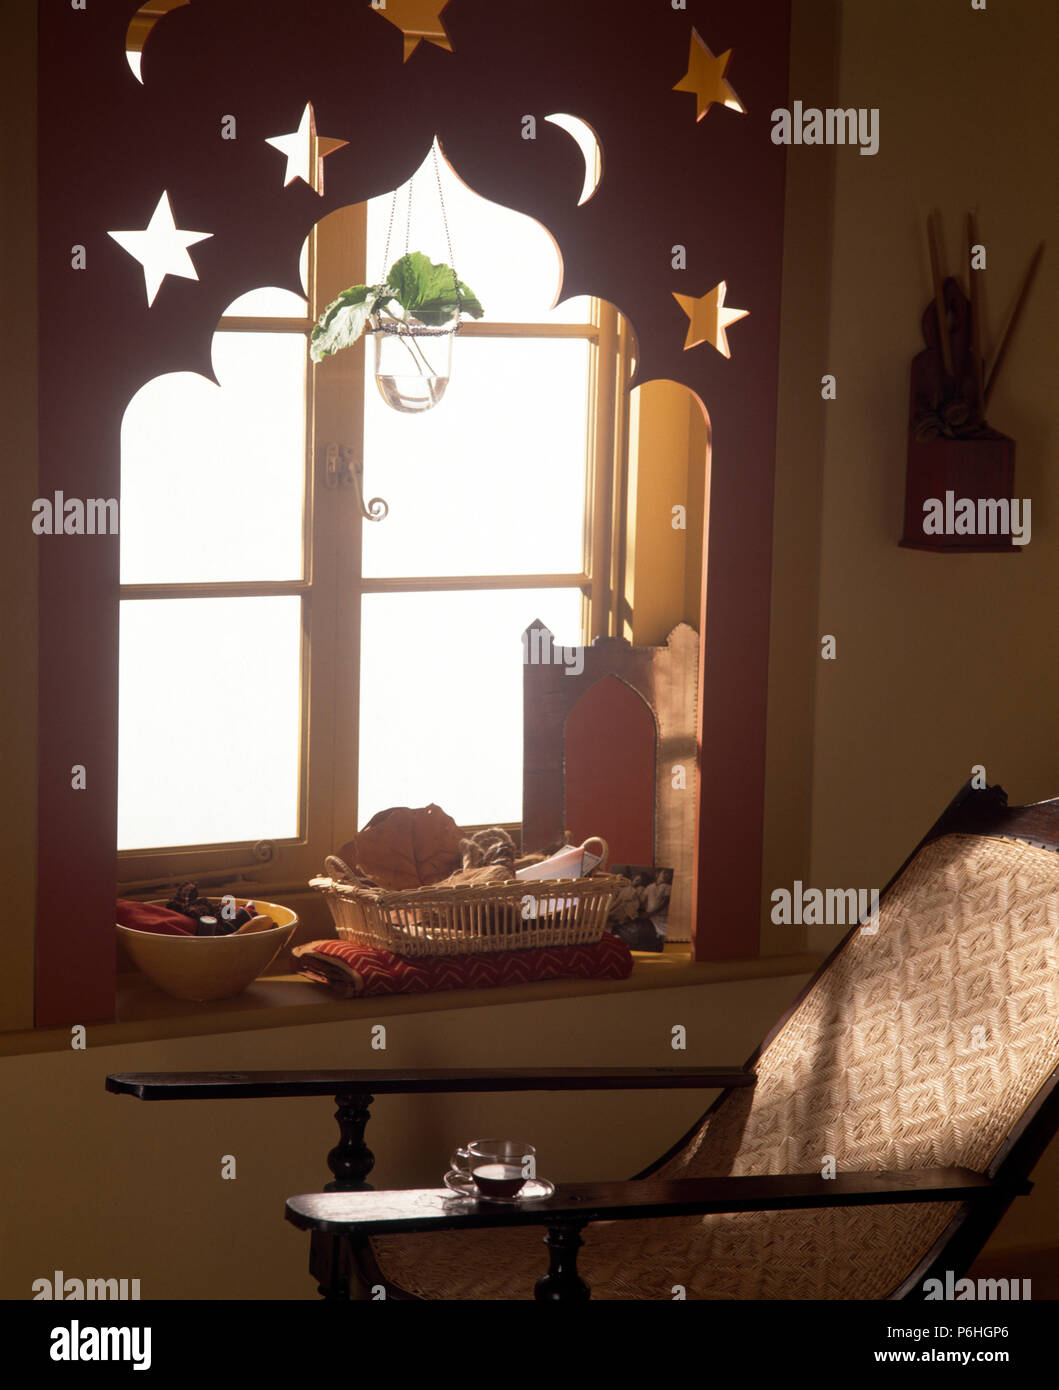 Terrific Decorative Mdf Lambrequin On Window In An Economy Style Pdpeps Interior Chair Design Pdpepsorg